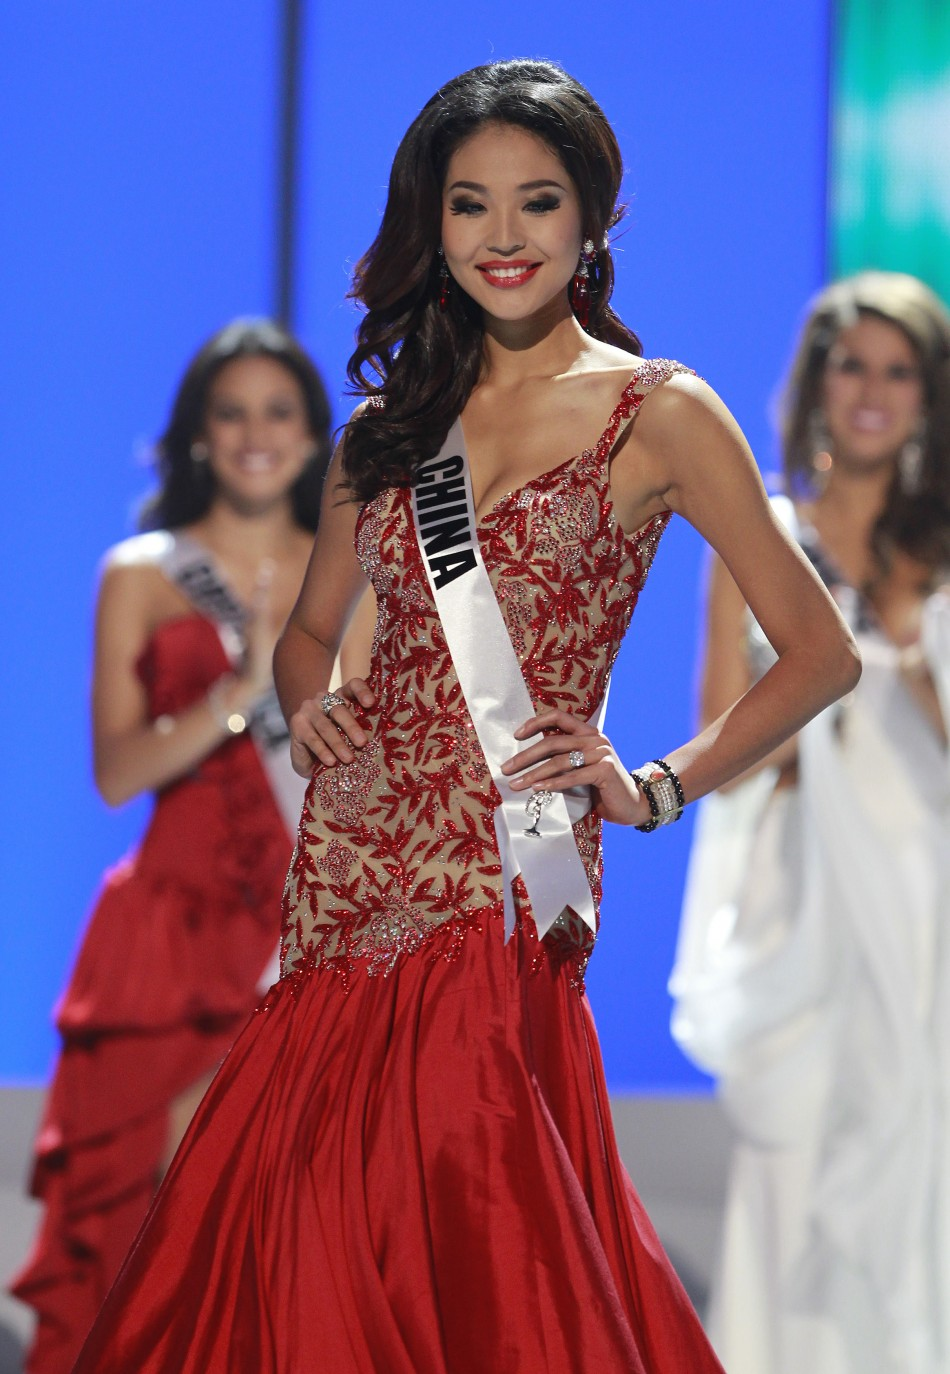 Miss China Luo Zilin